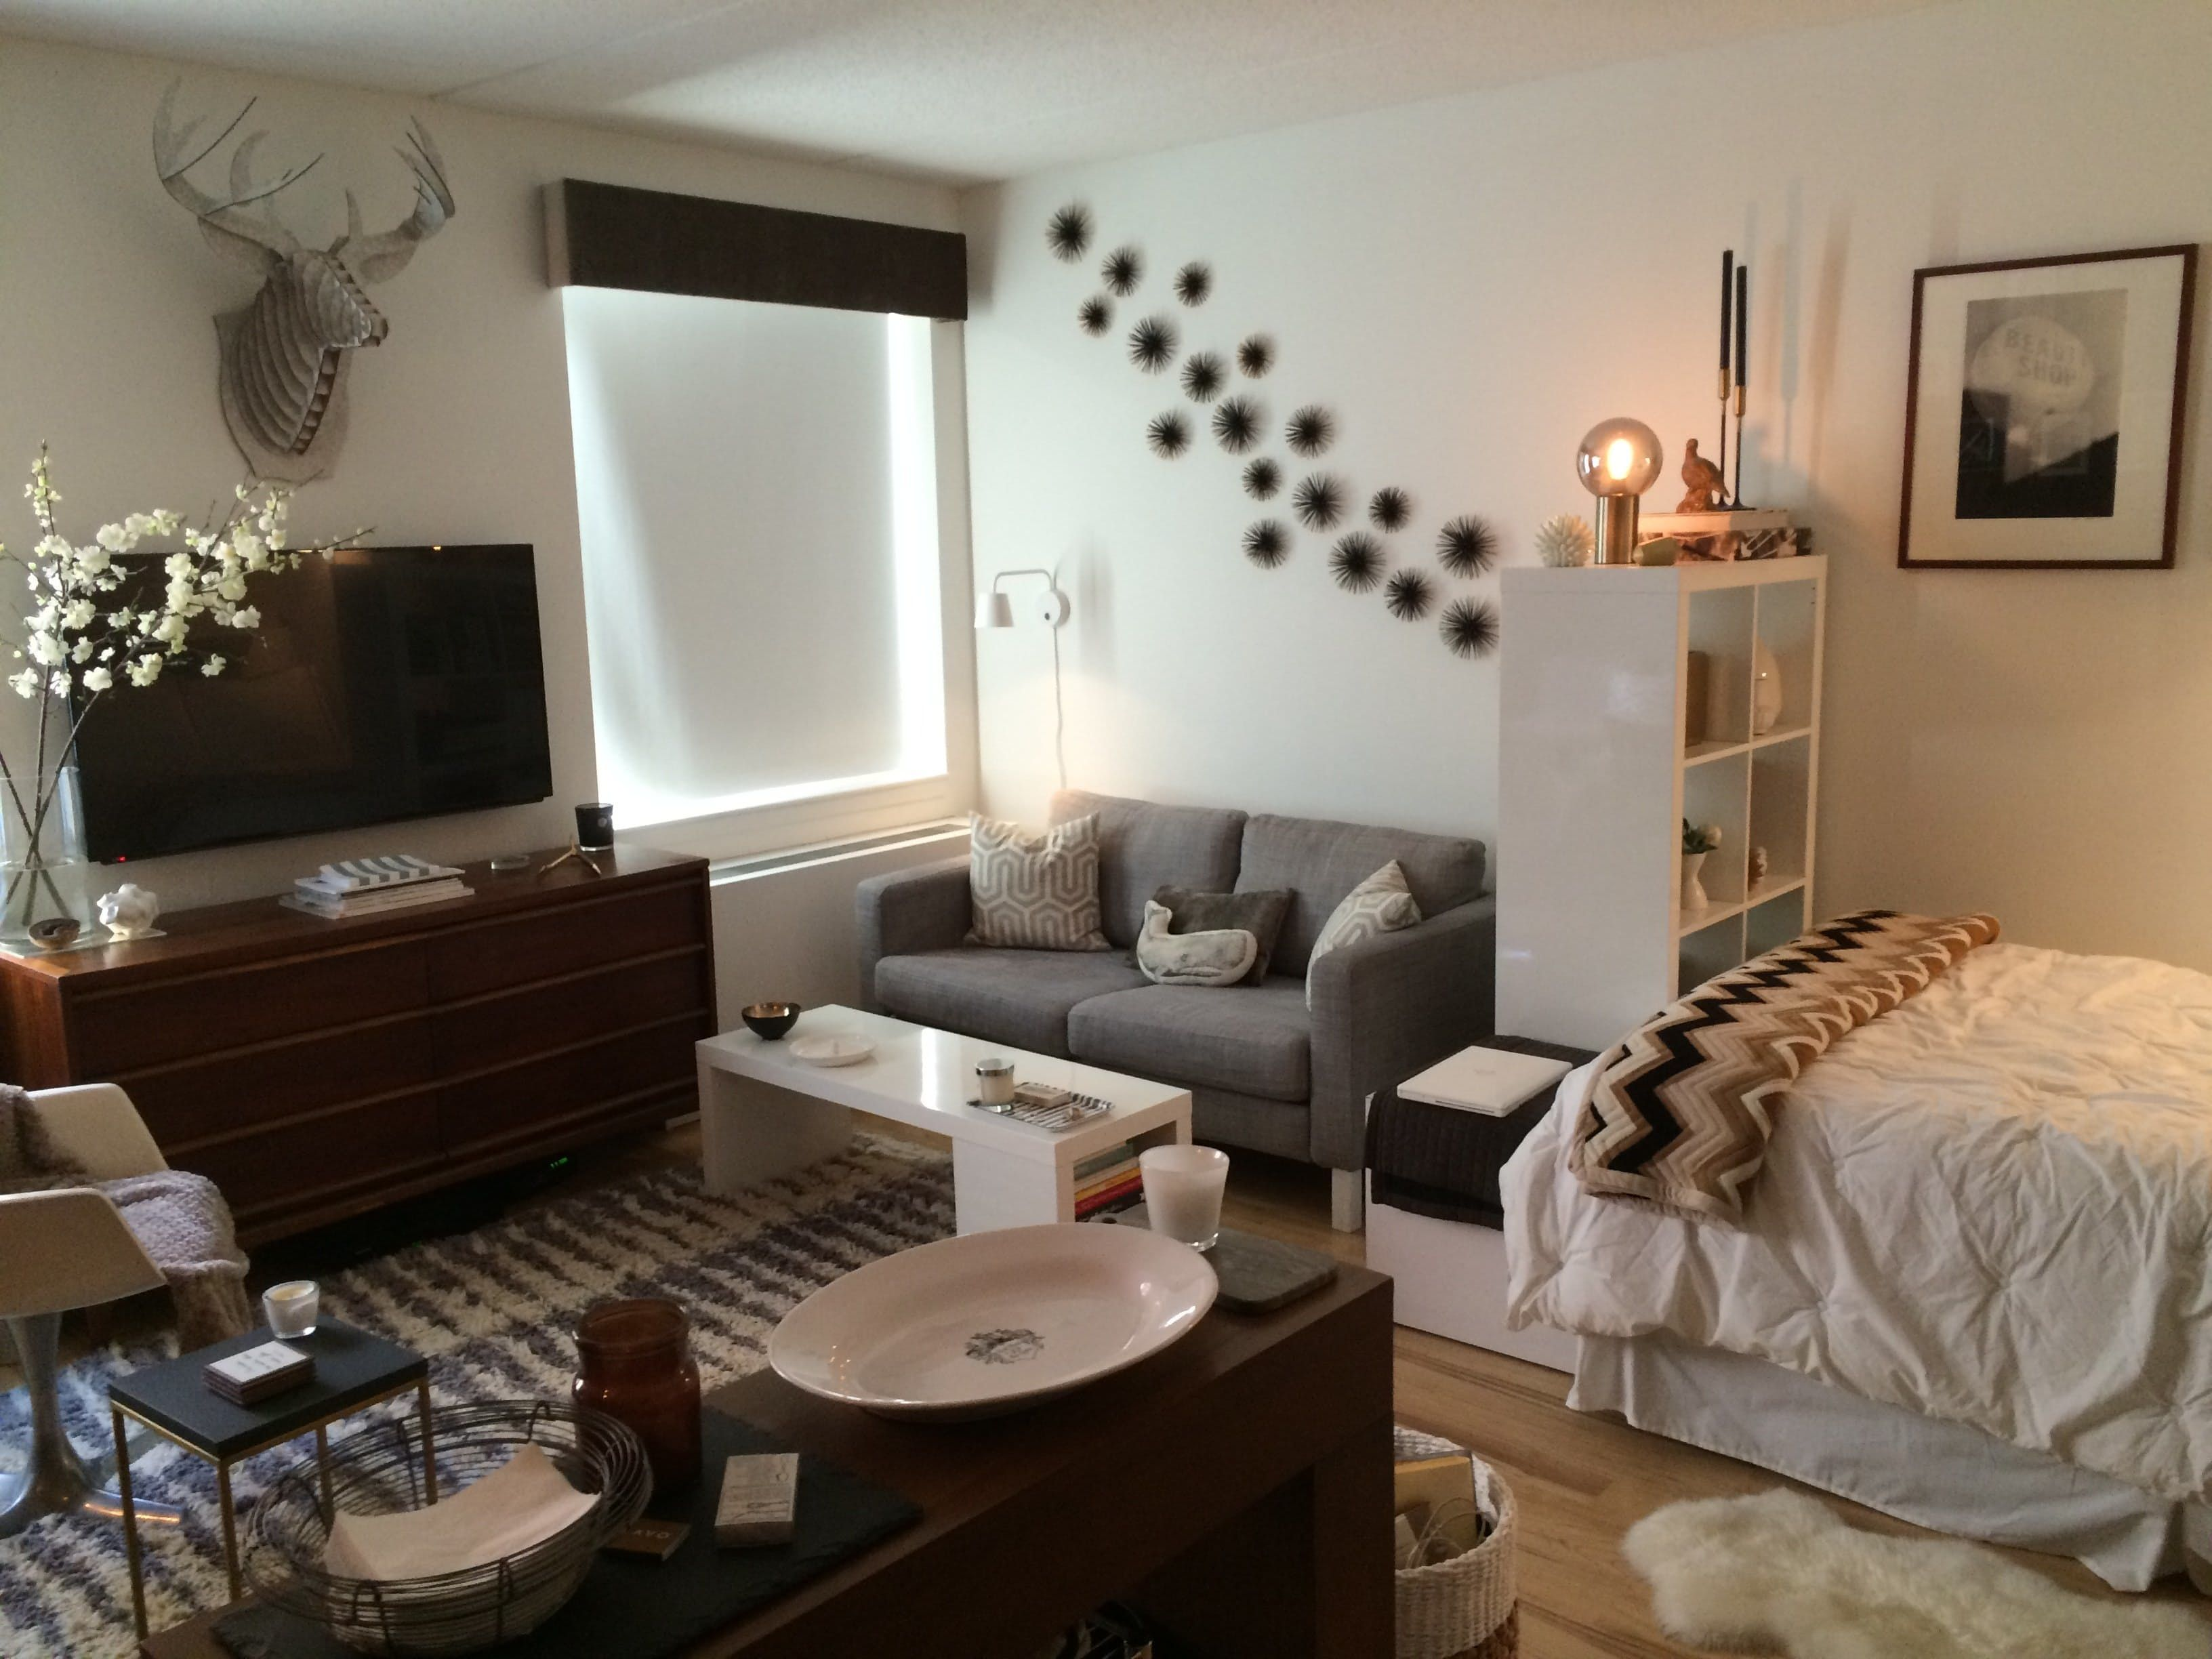 5 Studio Apartment Layouts That Just Plain Work | IKEA studio ...